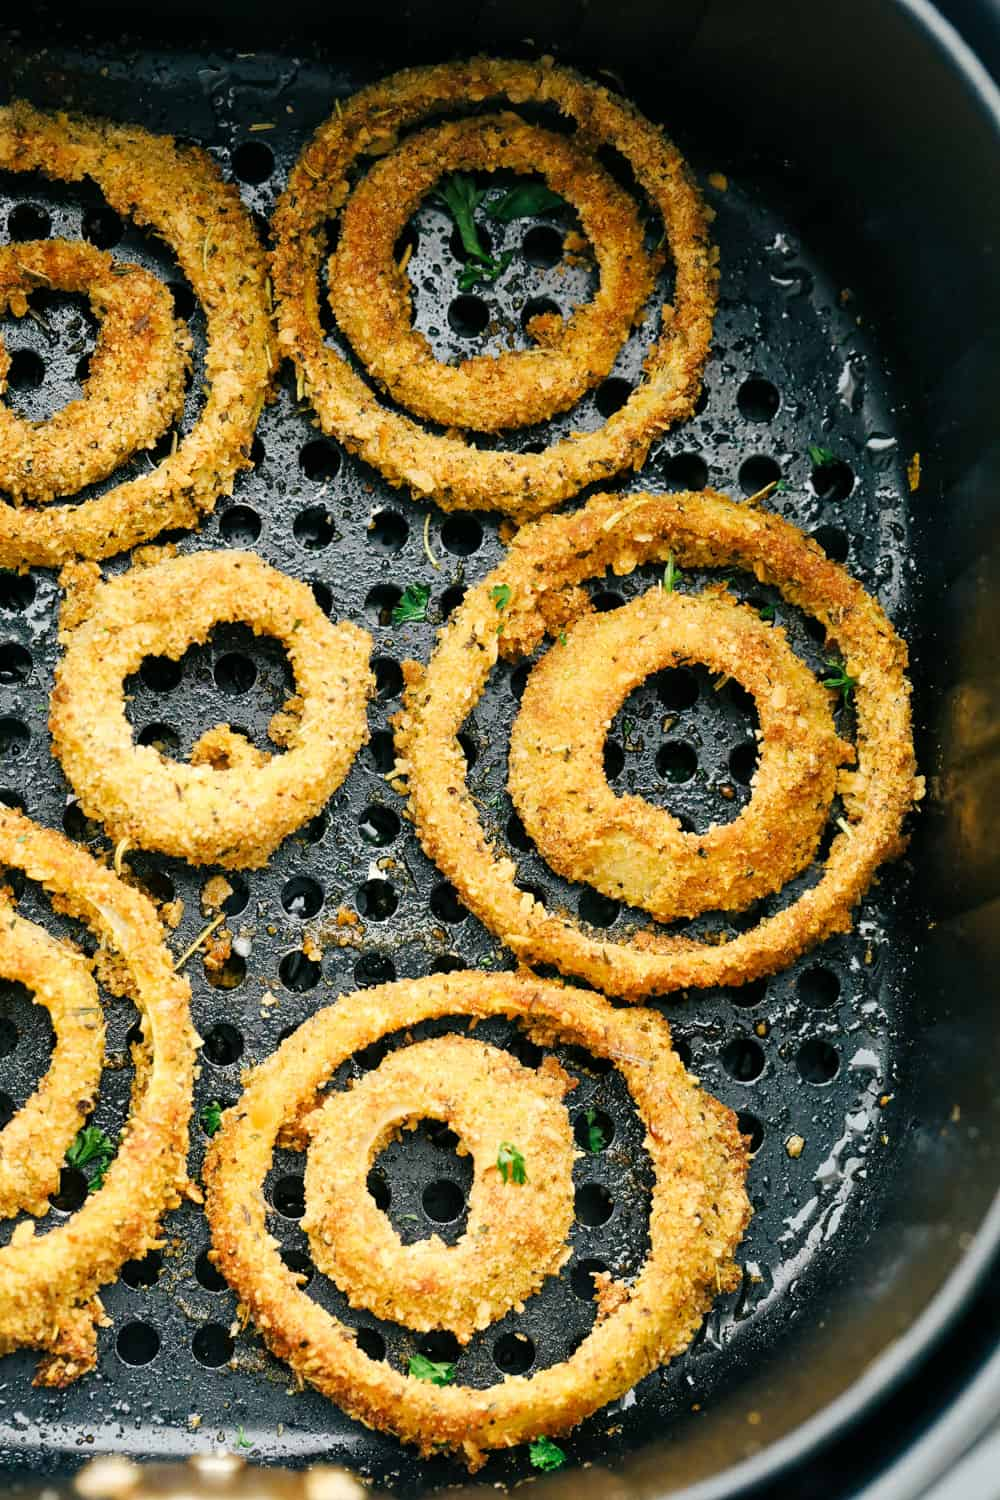 Air fryer onion rings in the air fryer basket.